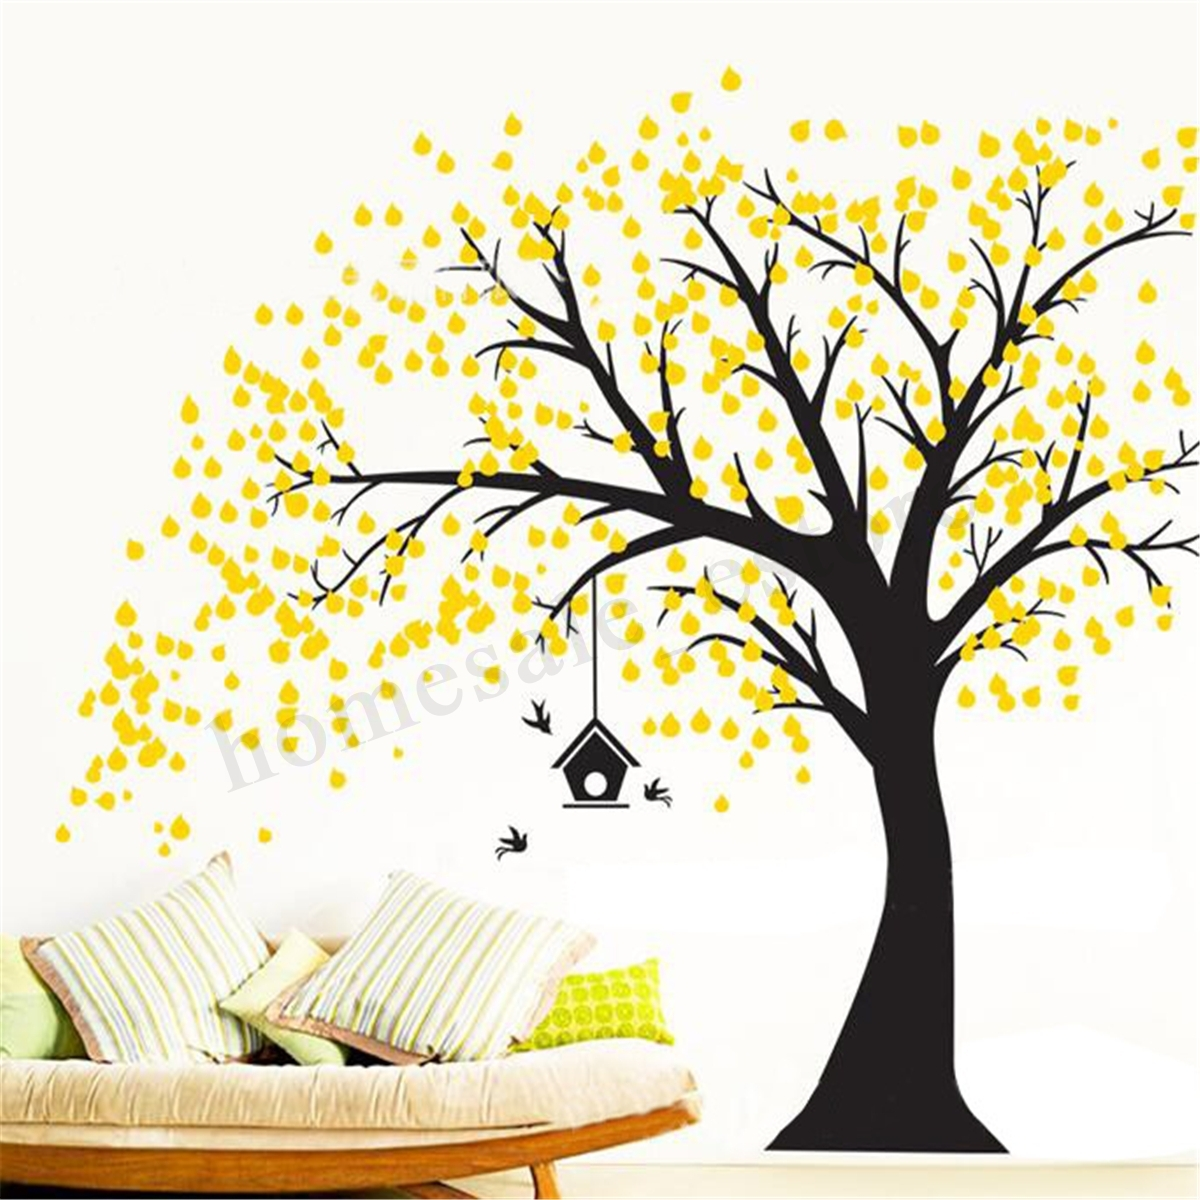 210Cmx180Cm Diy Tree Wall Paper Art Wall Sticker Home Bedroom Bbay Throughout Best And Newest Wall Tree Art (Gallery 11 of 20)